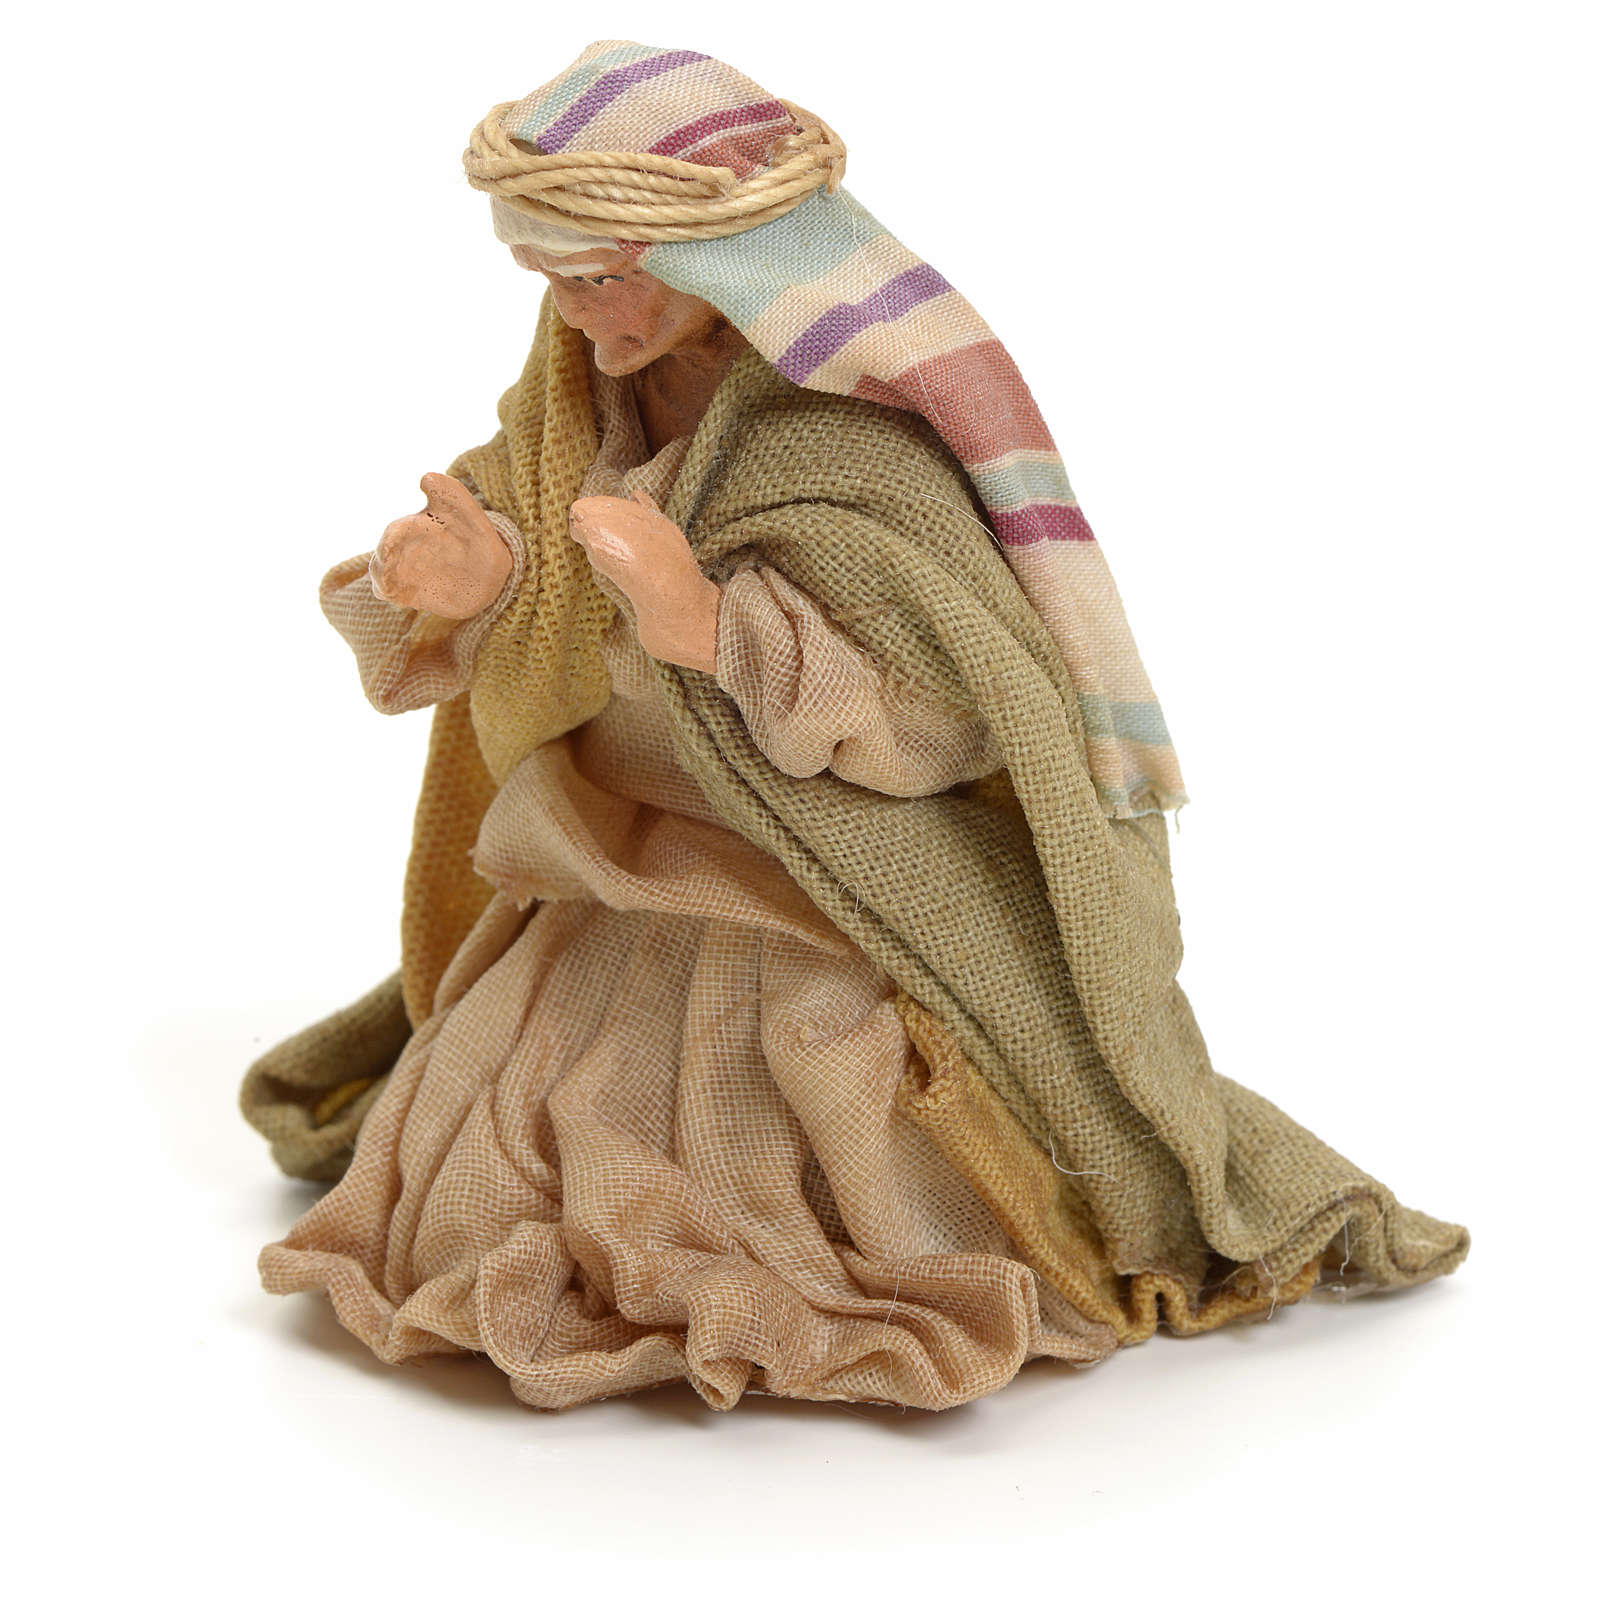 Neapolitan Nativity figurine, kneeling woman praying, 8 cm 4